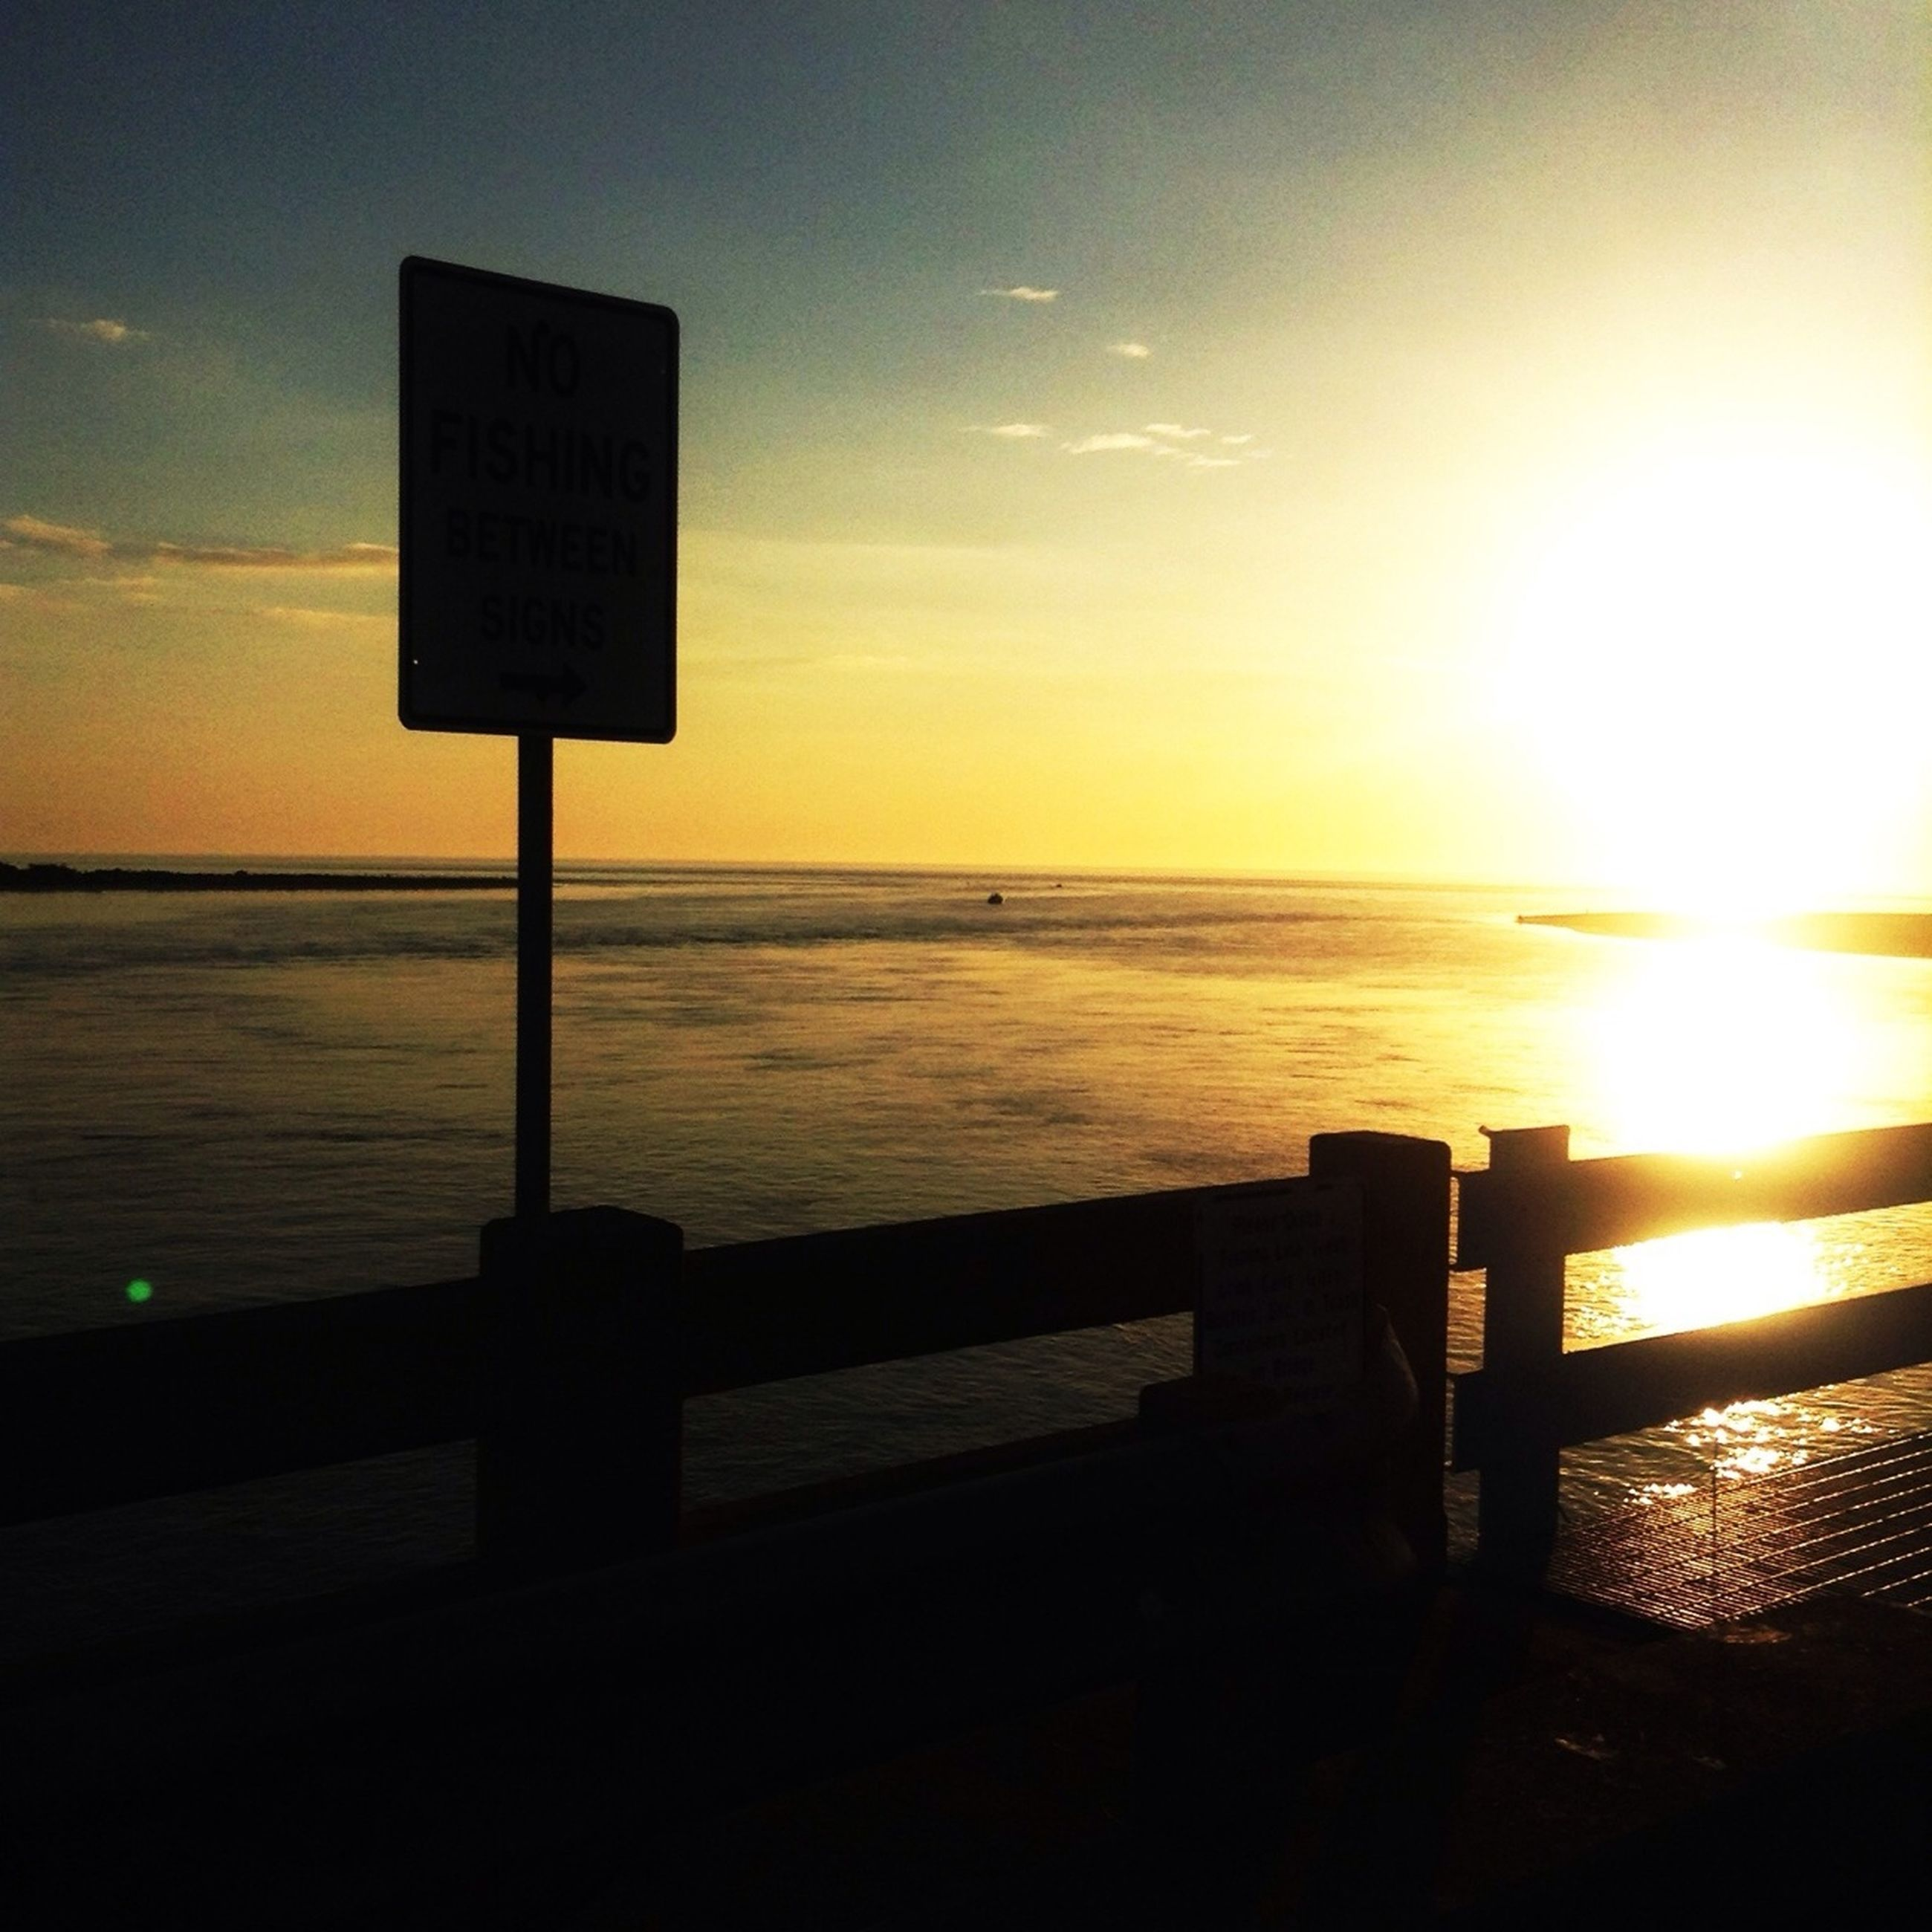 sunset, sea, water, horizon over water, guidance, communication, scenics, text, tranquility, sky, tranquil scene, orange color, western script, information sign, beauty in nature, beach, silhouette, sun, sign, nature